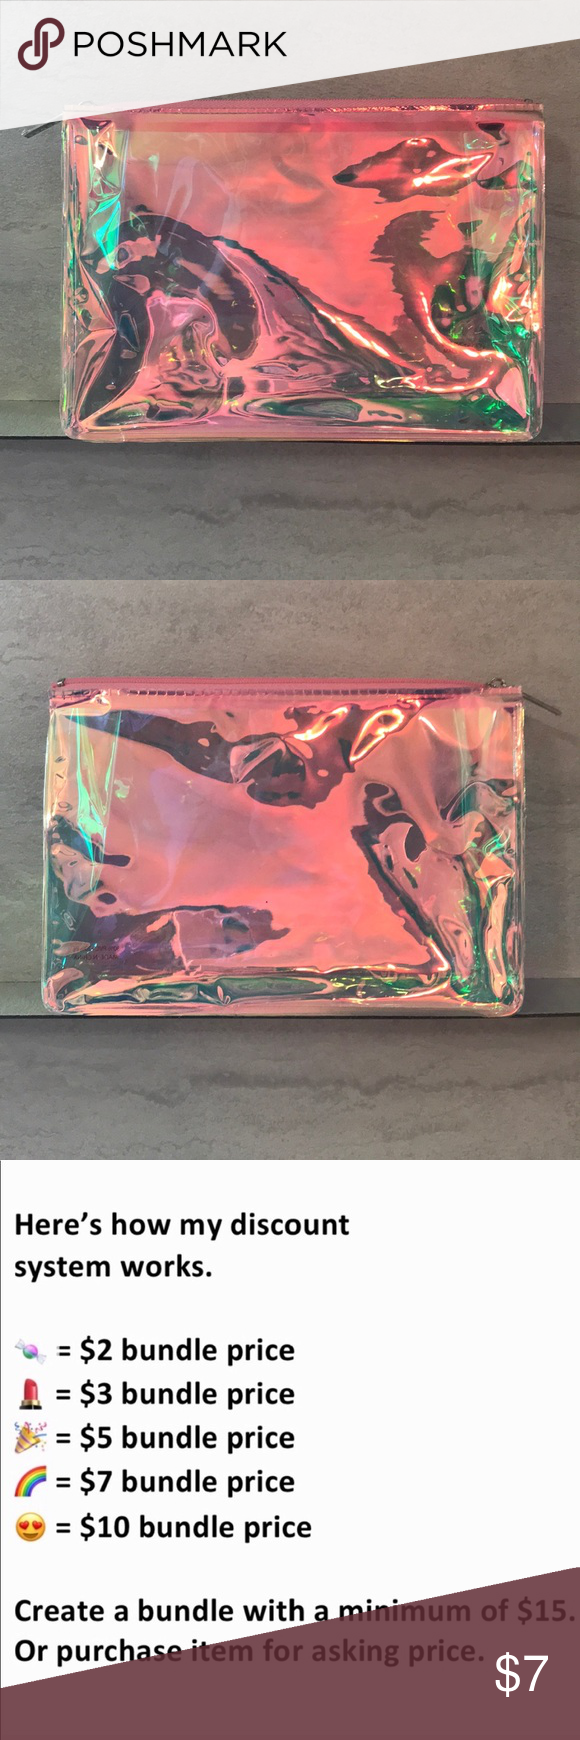 7/15 Sephora Glow For It Holographic Bag 💖 NWT